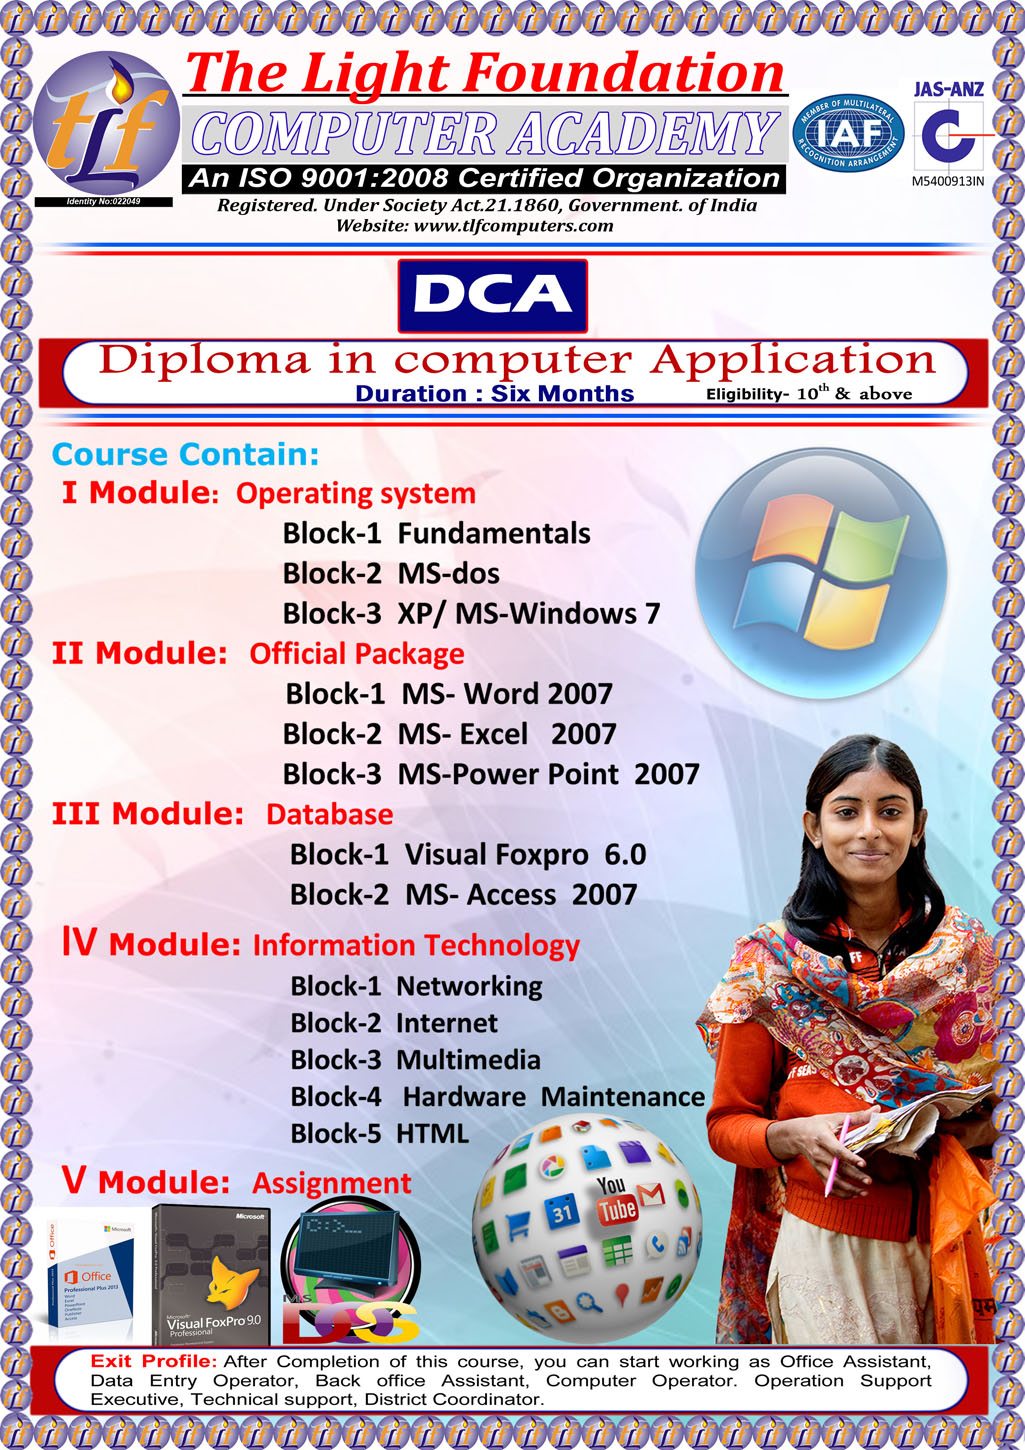 Tlf computers courses diploma in computer applicationdca diploma in computer applicationdca xflitez Gallery